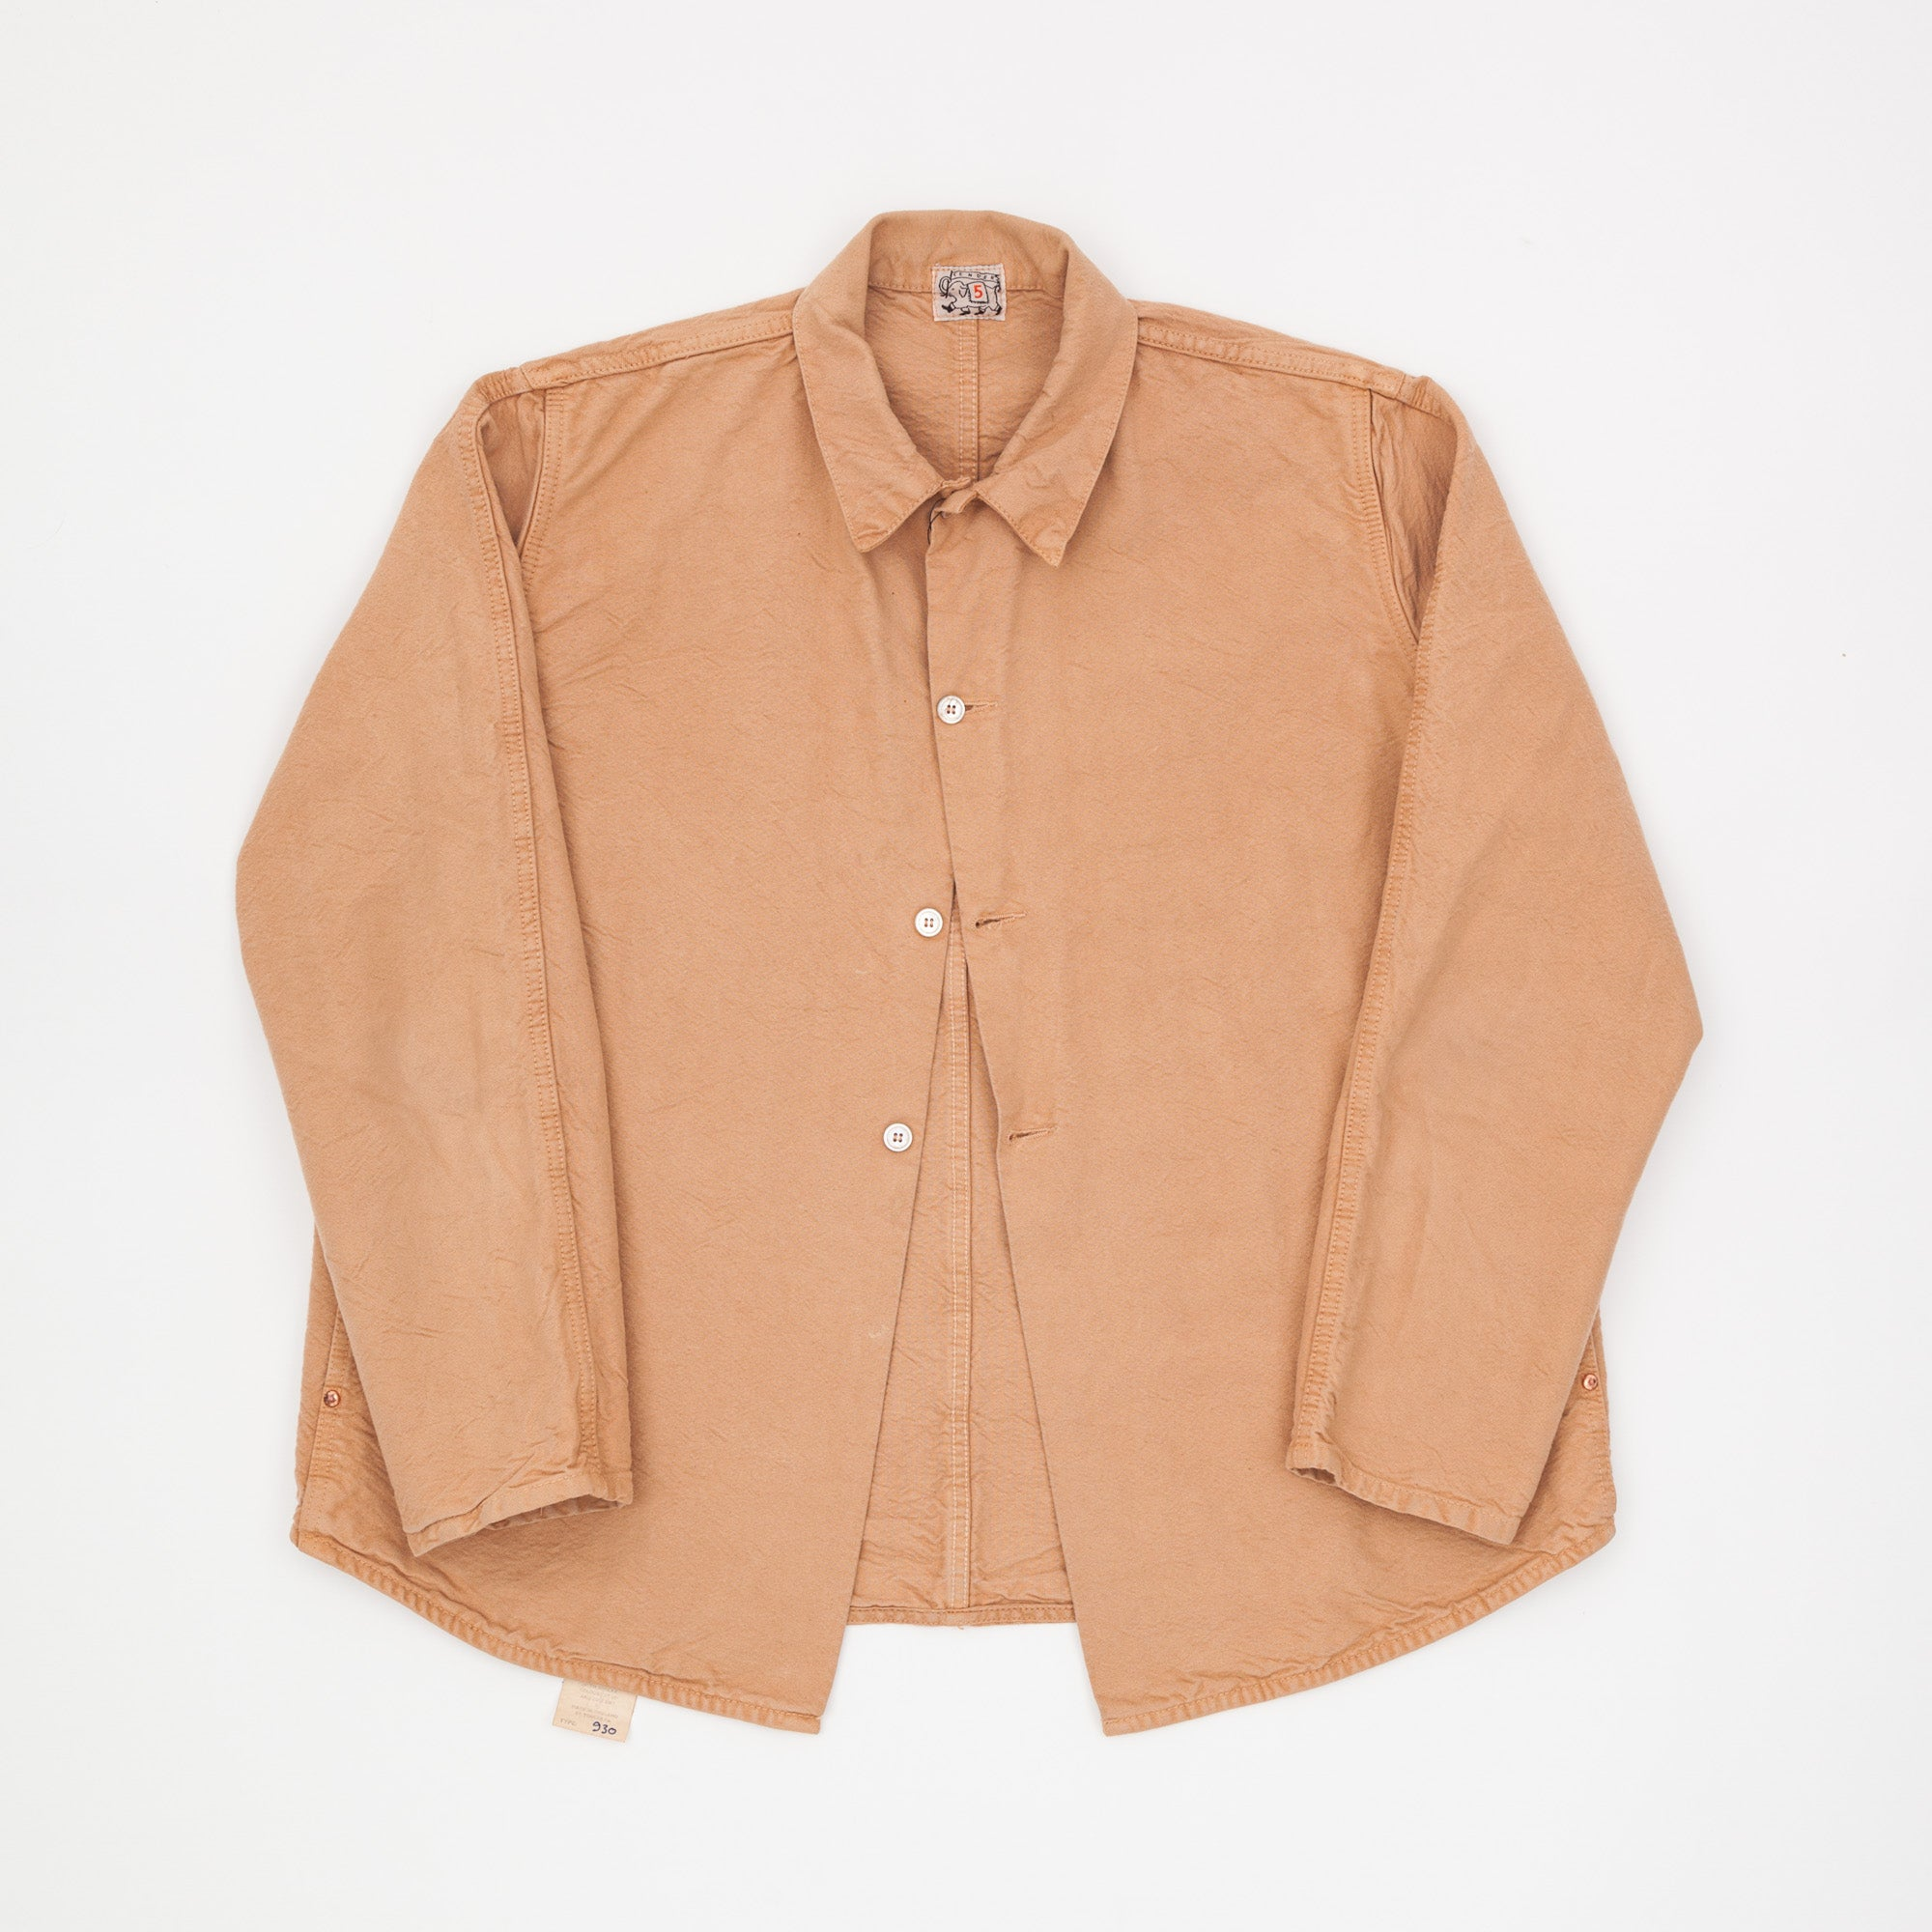 Tender Co. Type 930 Double Front Butterfly Jacket